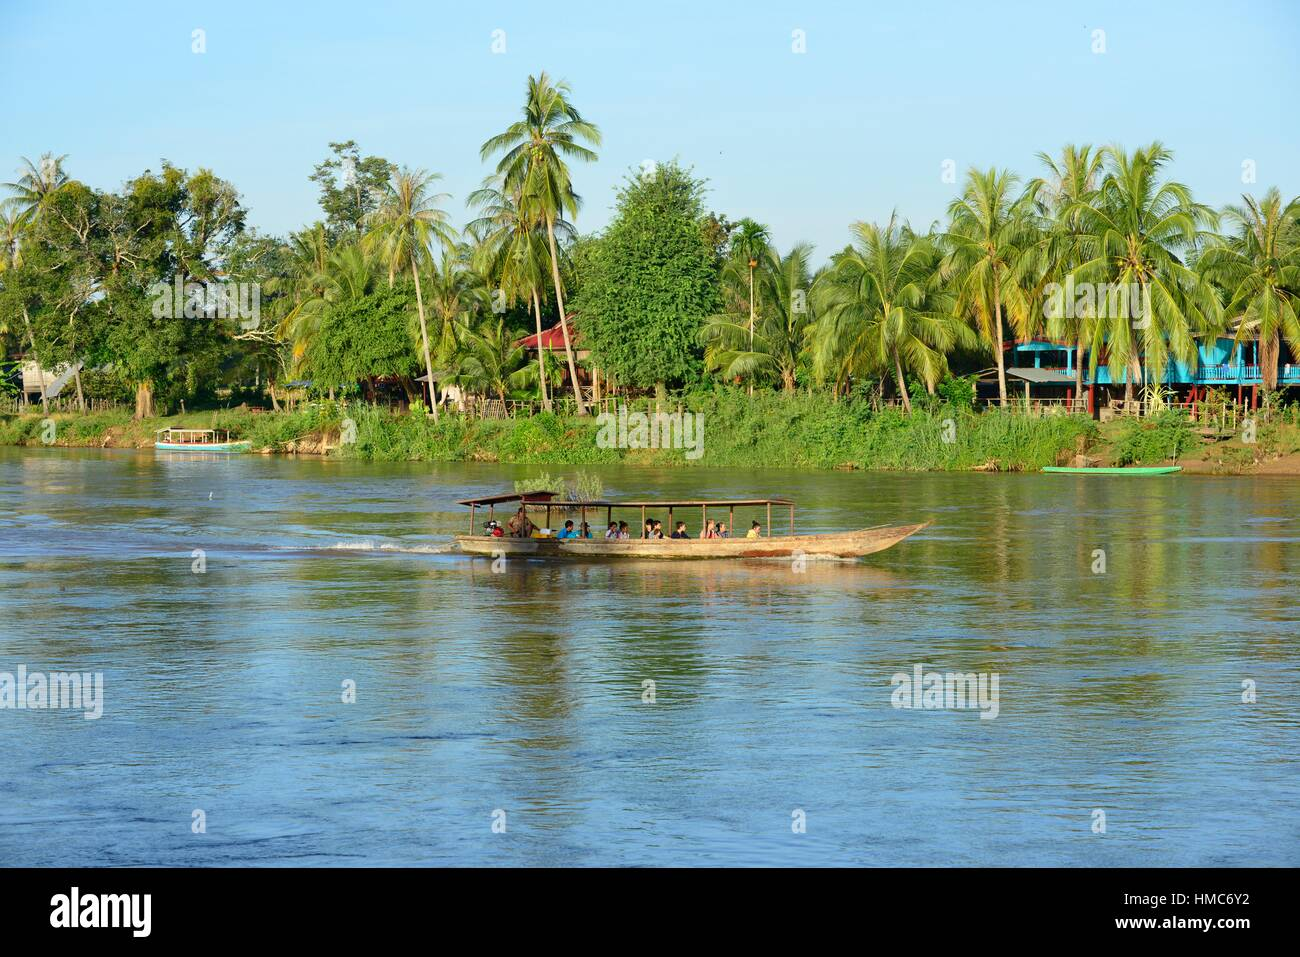 The Mekong river in Don Khon, Laos, South East Asia. - Stock Image